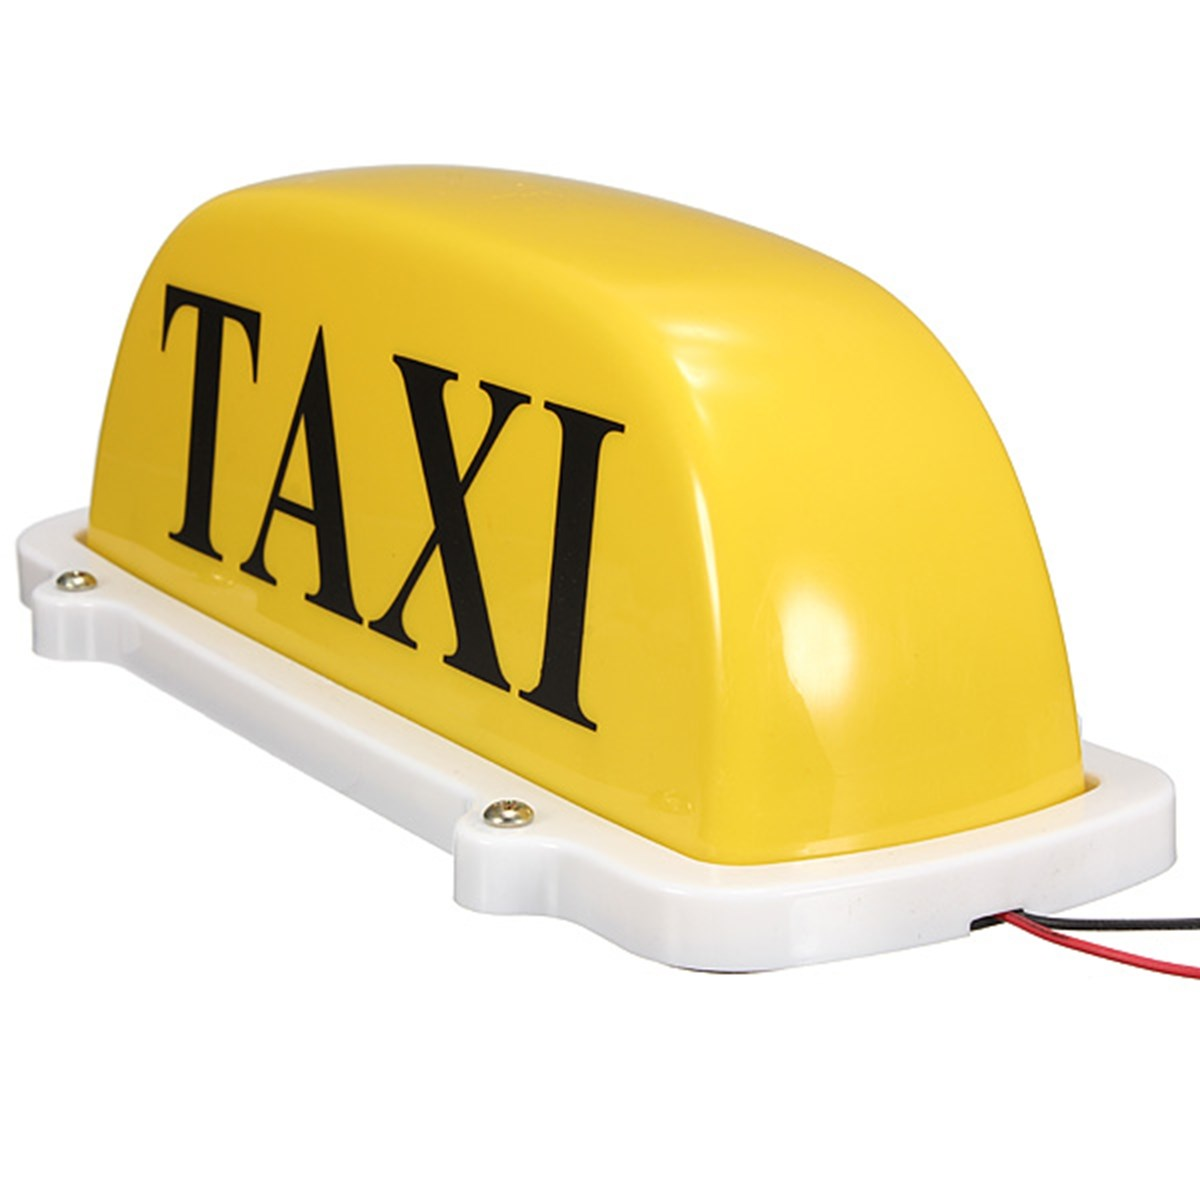 Hot Selling DC12V ABS Car Taxi Cab Roof Top Sign Light Lamp Magnetic Yellow Large-Size<br><br>Aliexpress